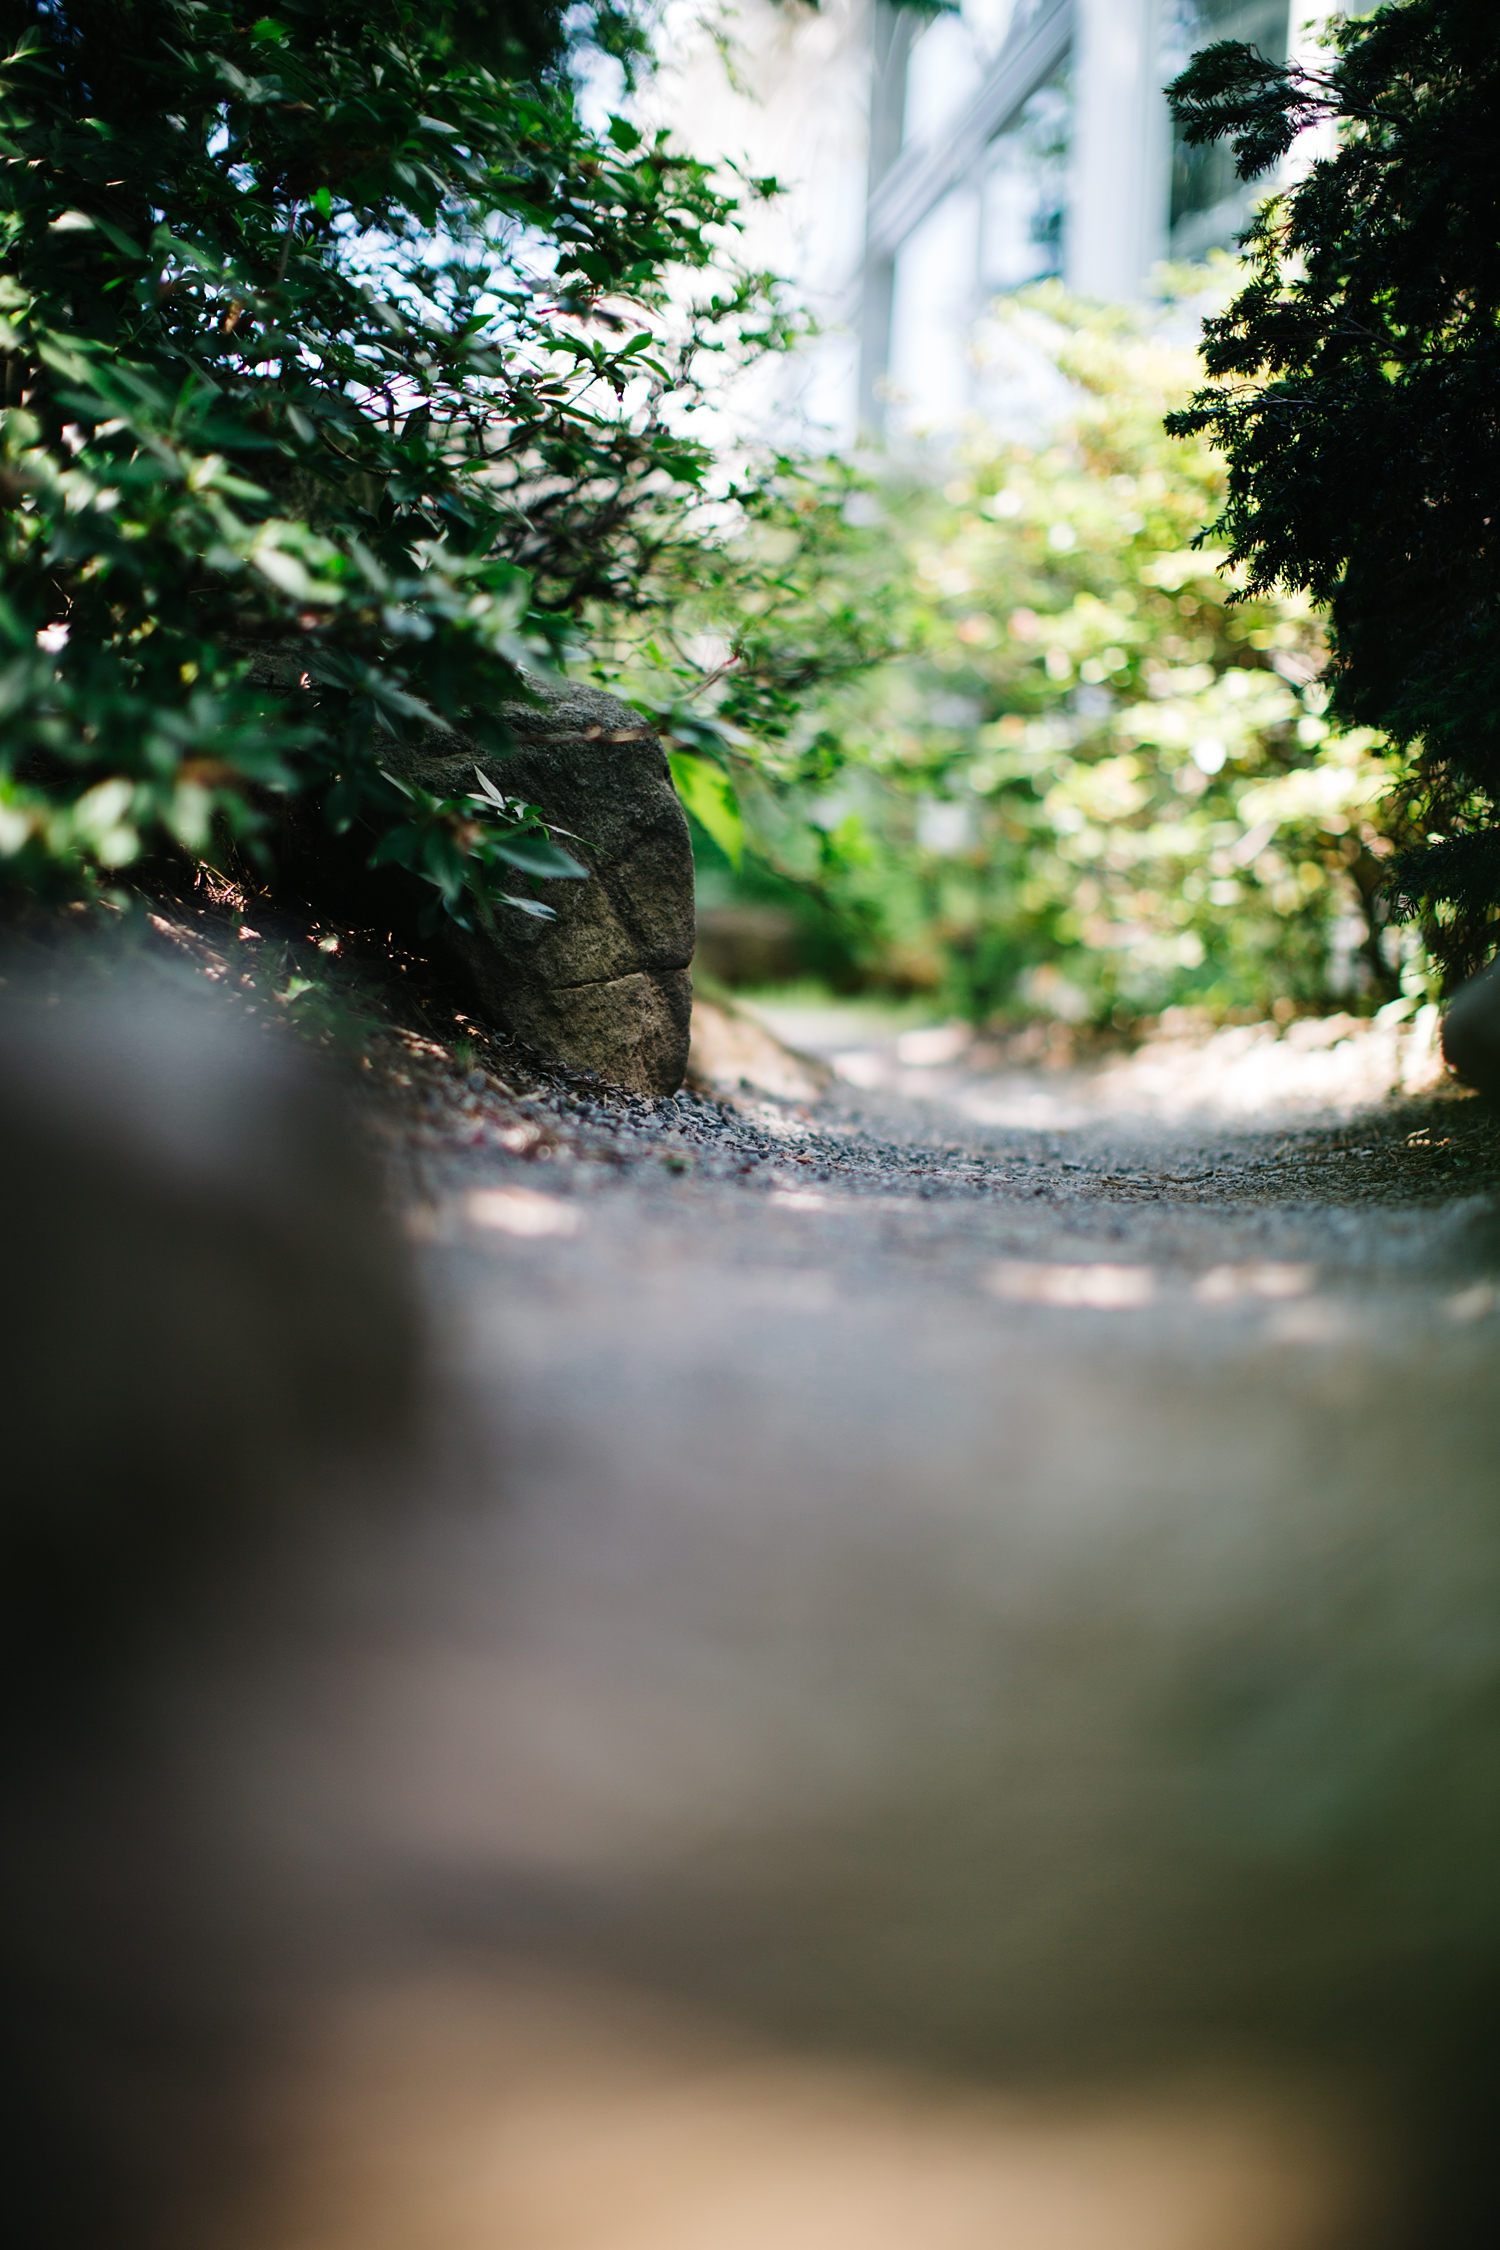 The sound of the pea gravel under my feet on the path.